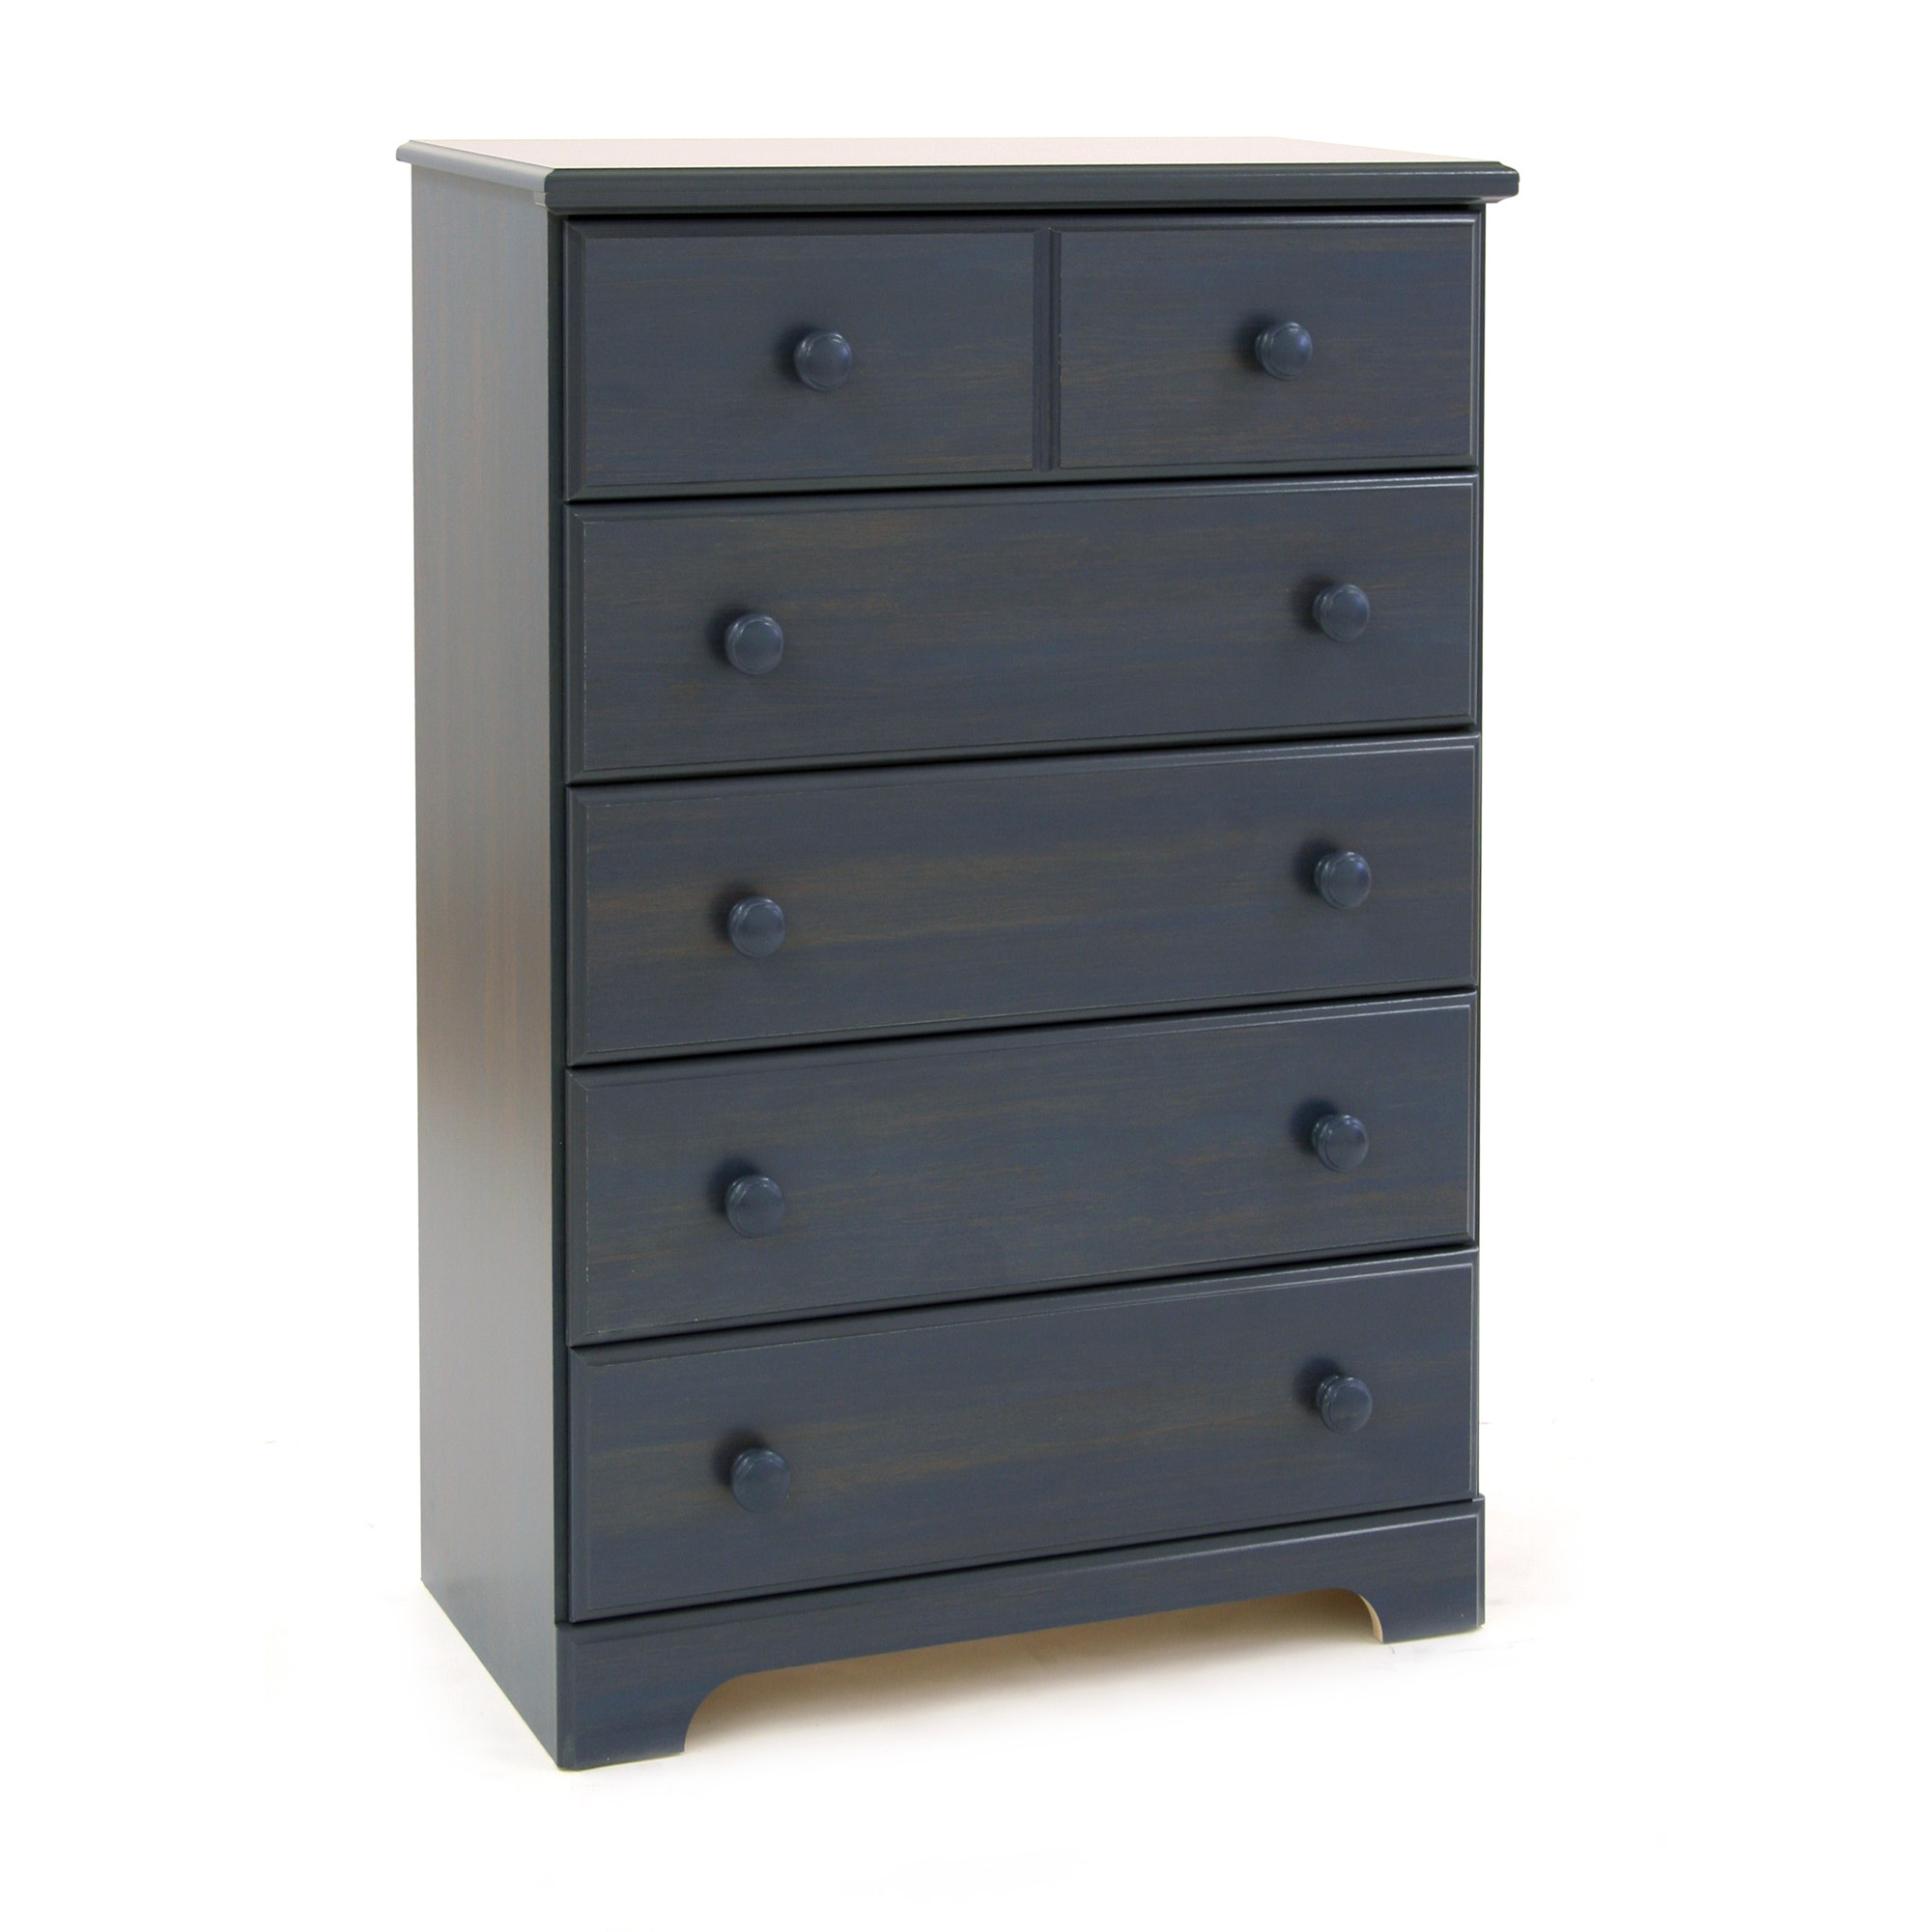 Summer Breeze style 5-drawer chest in blueberry